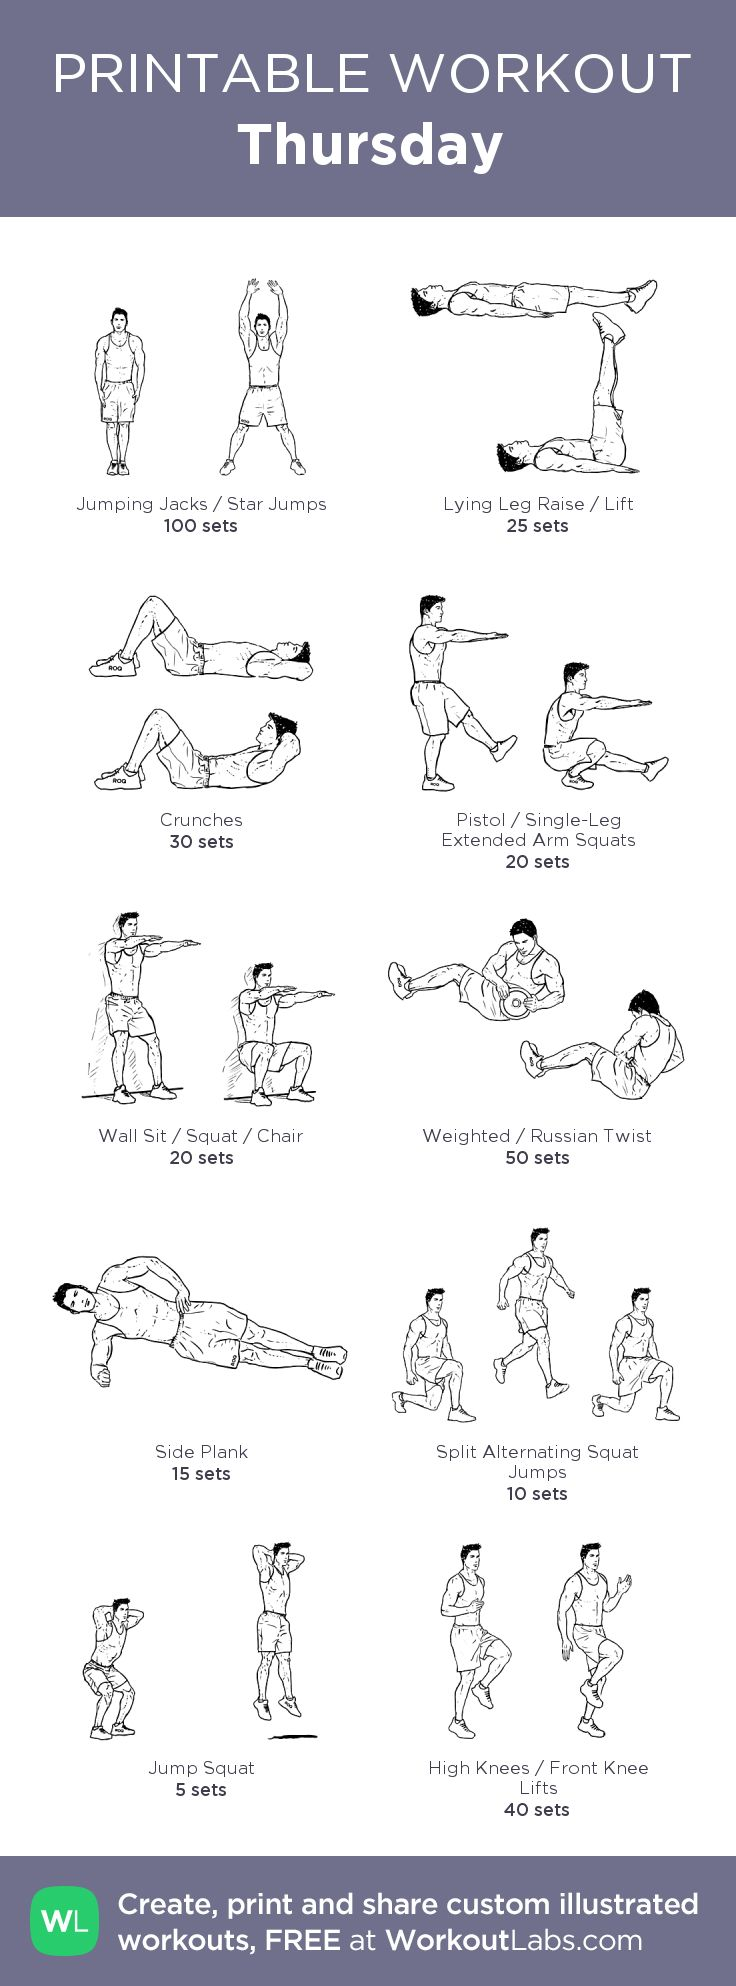 Thursday:my visual workout created at WorkoutLabs.com • Click through to customize and download as a FREE PDF! #customworkout